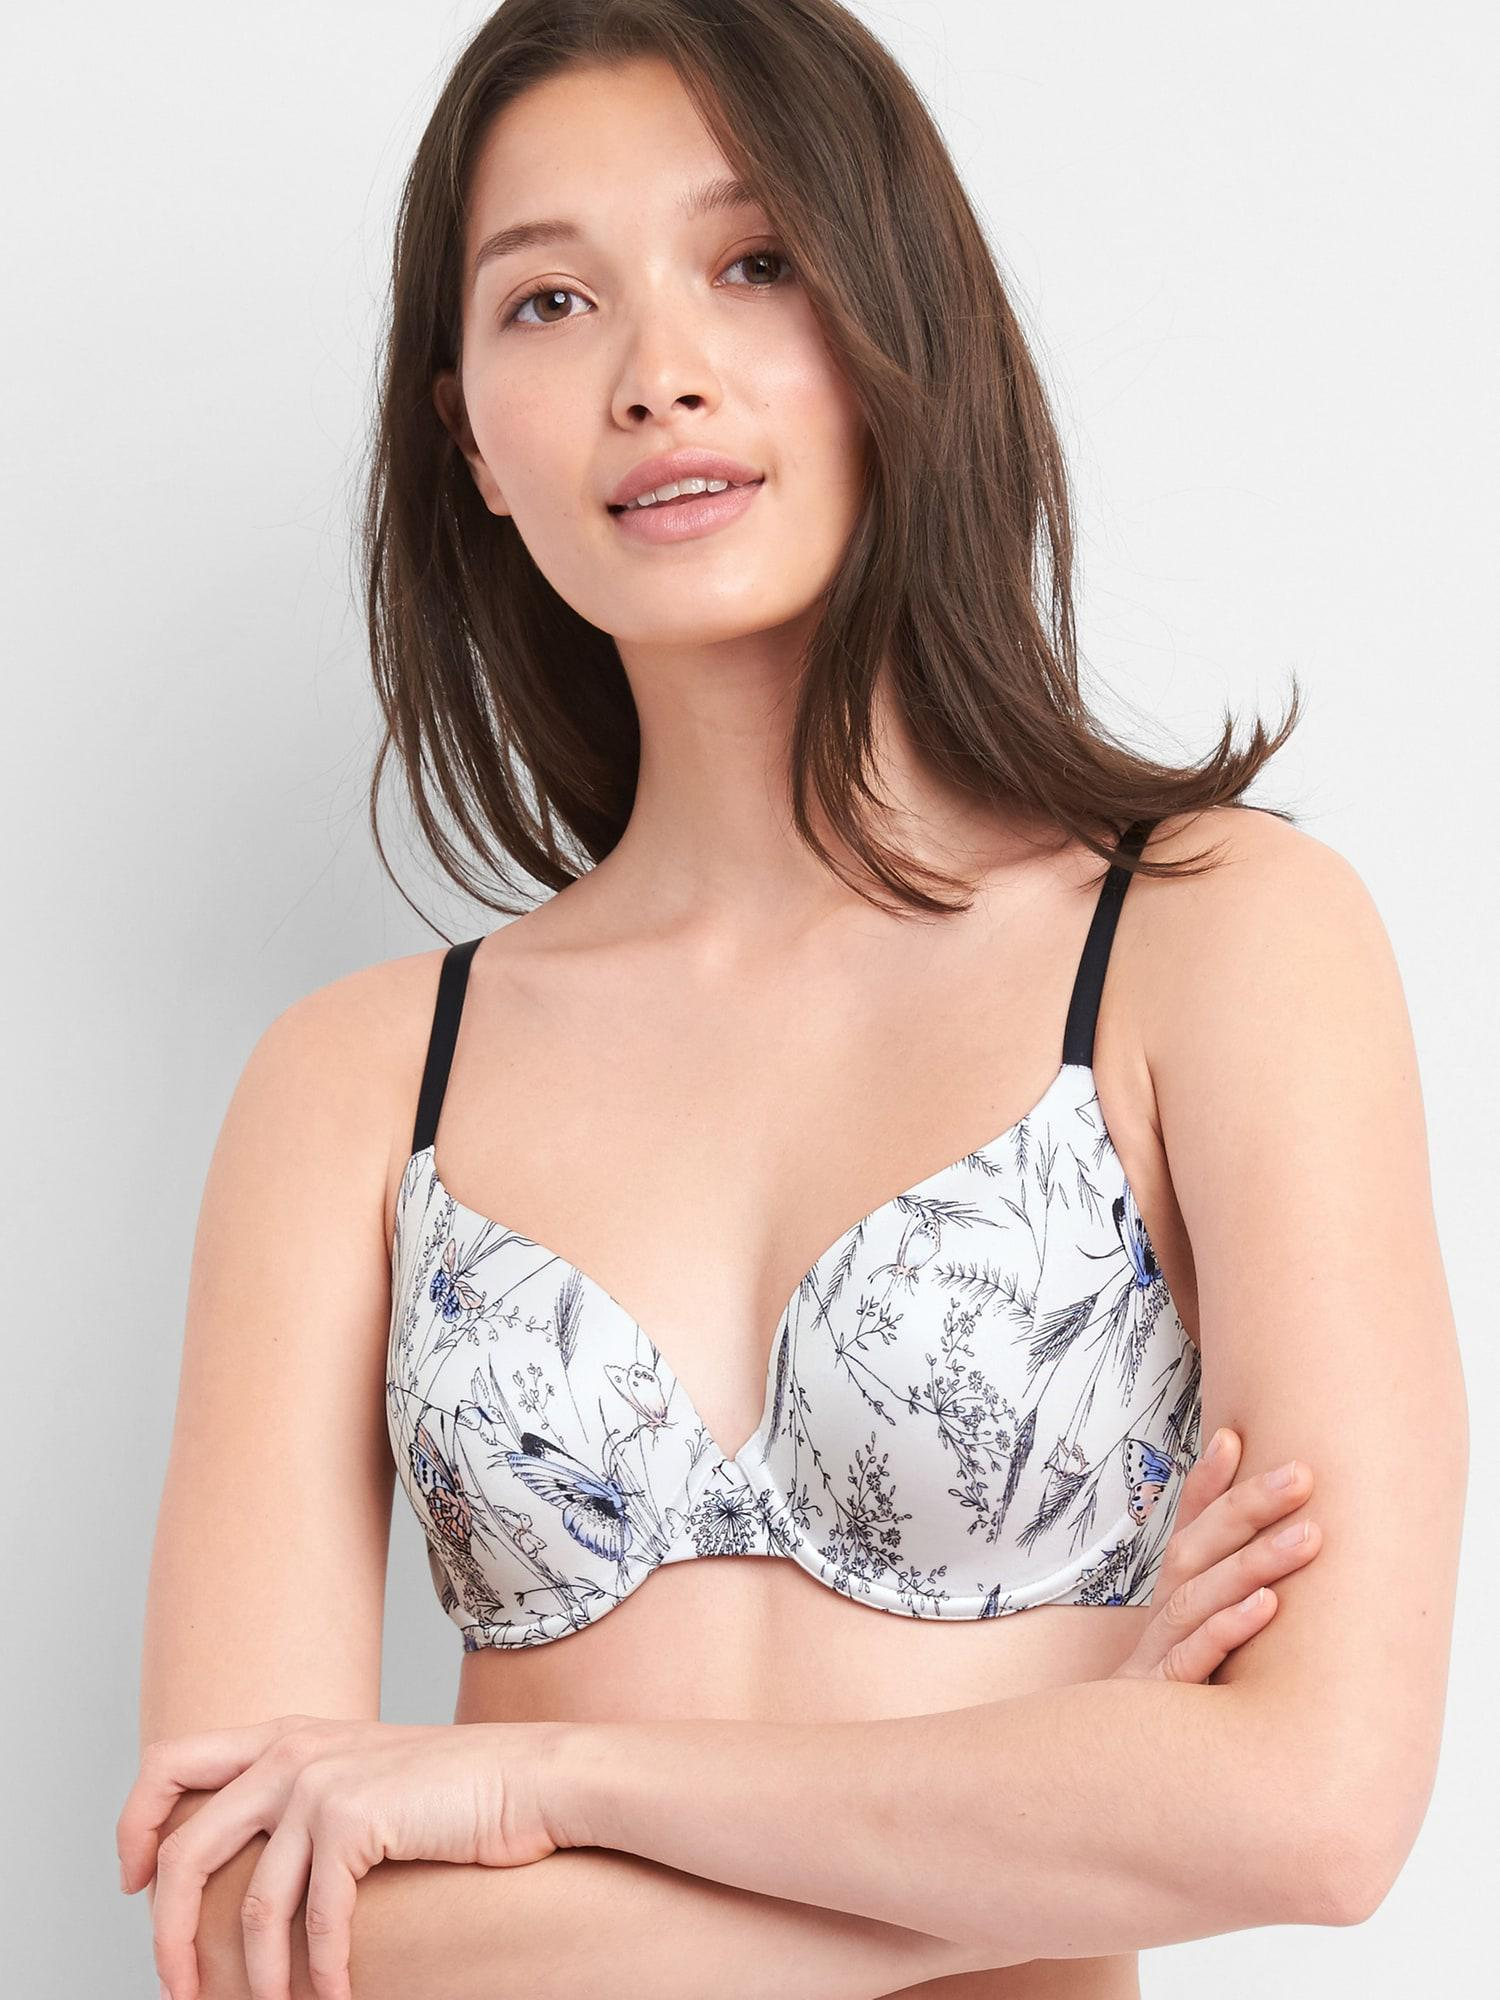 7a3d5779d07b2 Gap Everyday Smooth Favorite Coverage Bra in White - Lyst